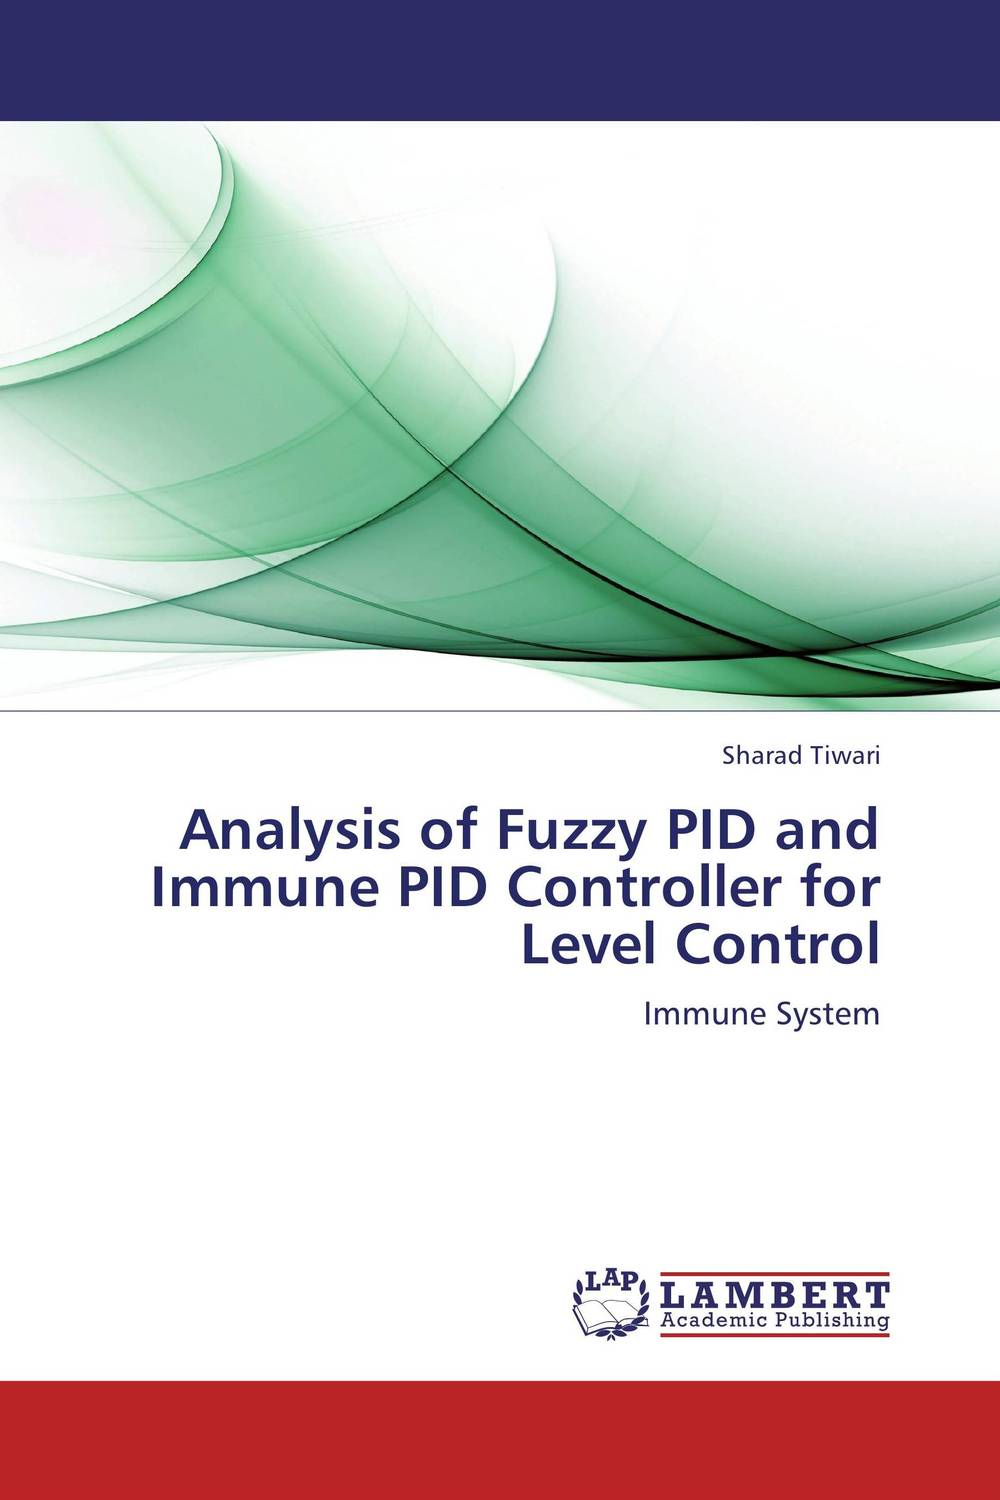 Analysis of Fuzzy PID and Immune PID Controller for  Level Control auto tuning of pid and fuzzy controllers using genetic algorithm